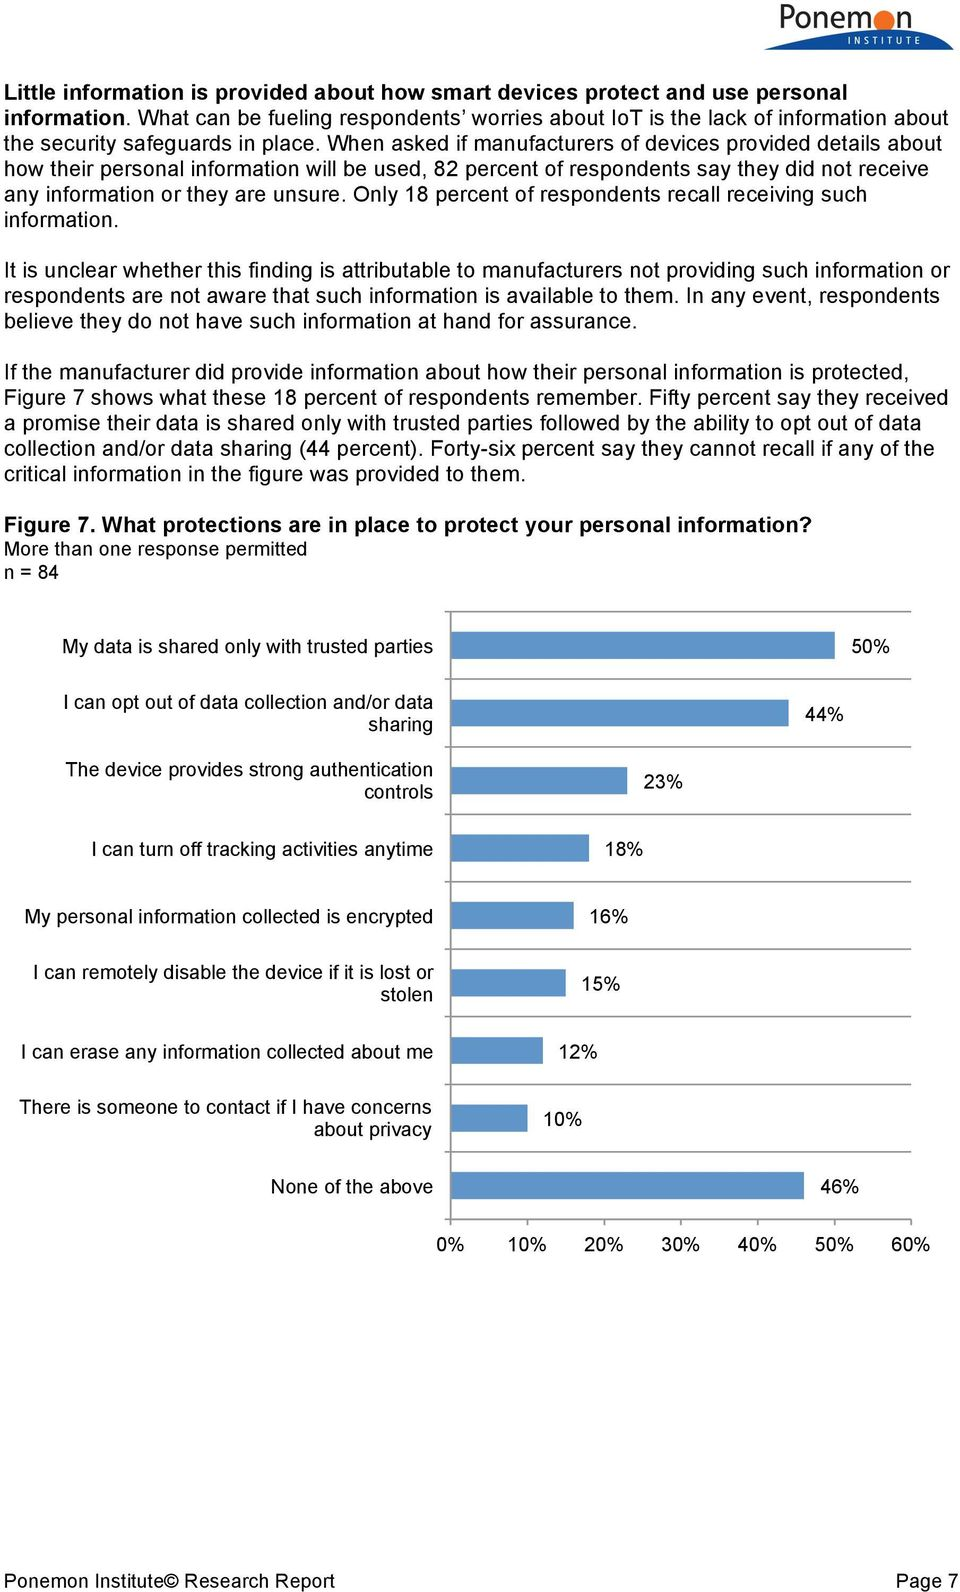 When asked if manufacturers of devices provided details about how their personal information will be used, 82 percent of respondents say they did not receive any information or they are unsure.